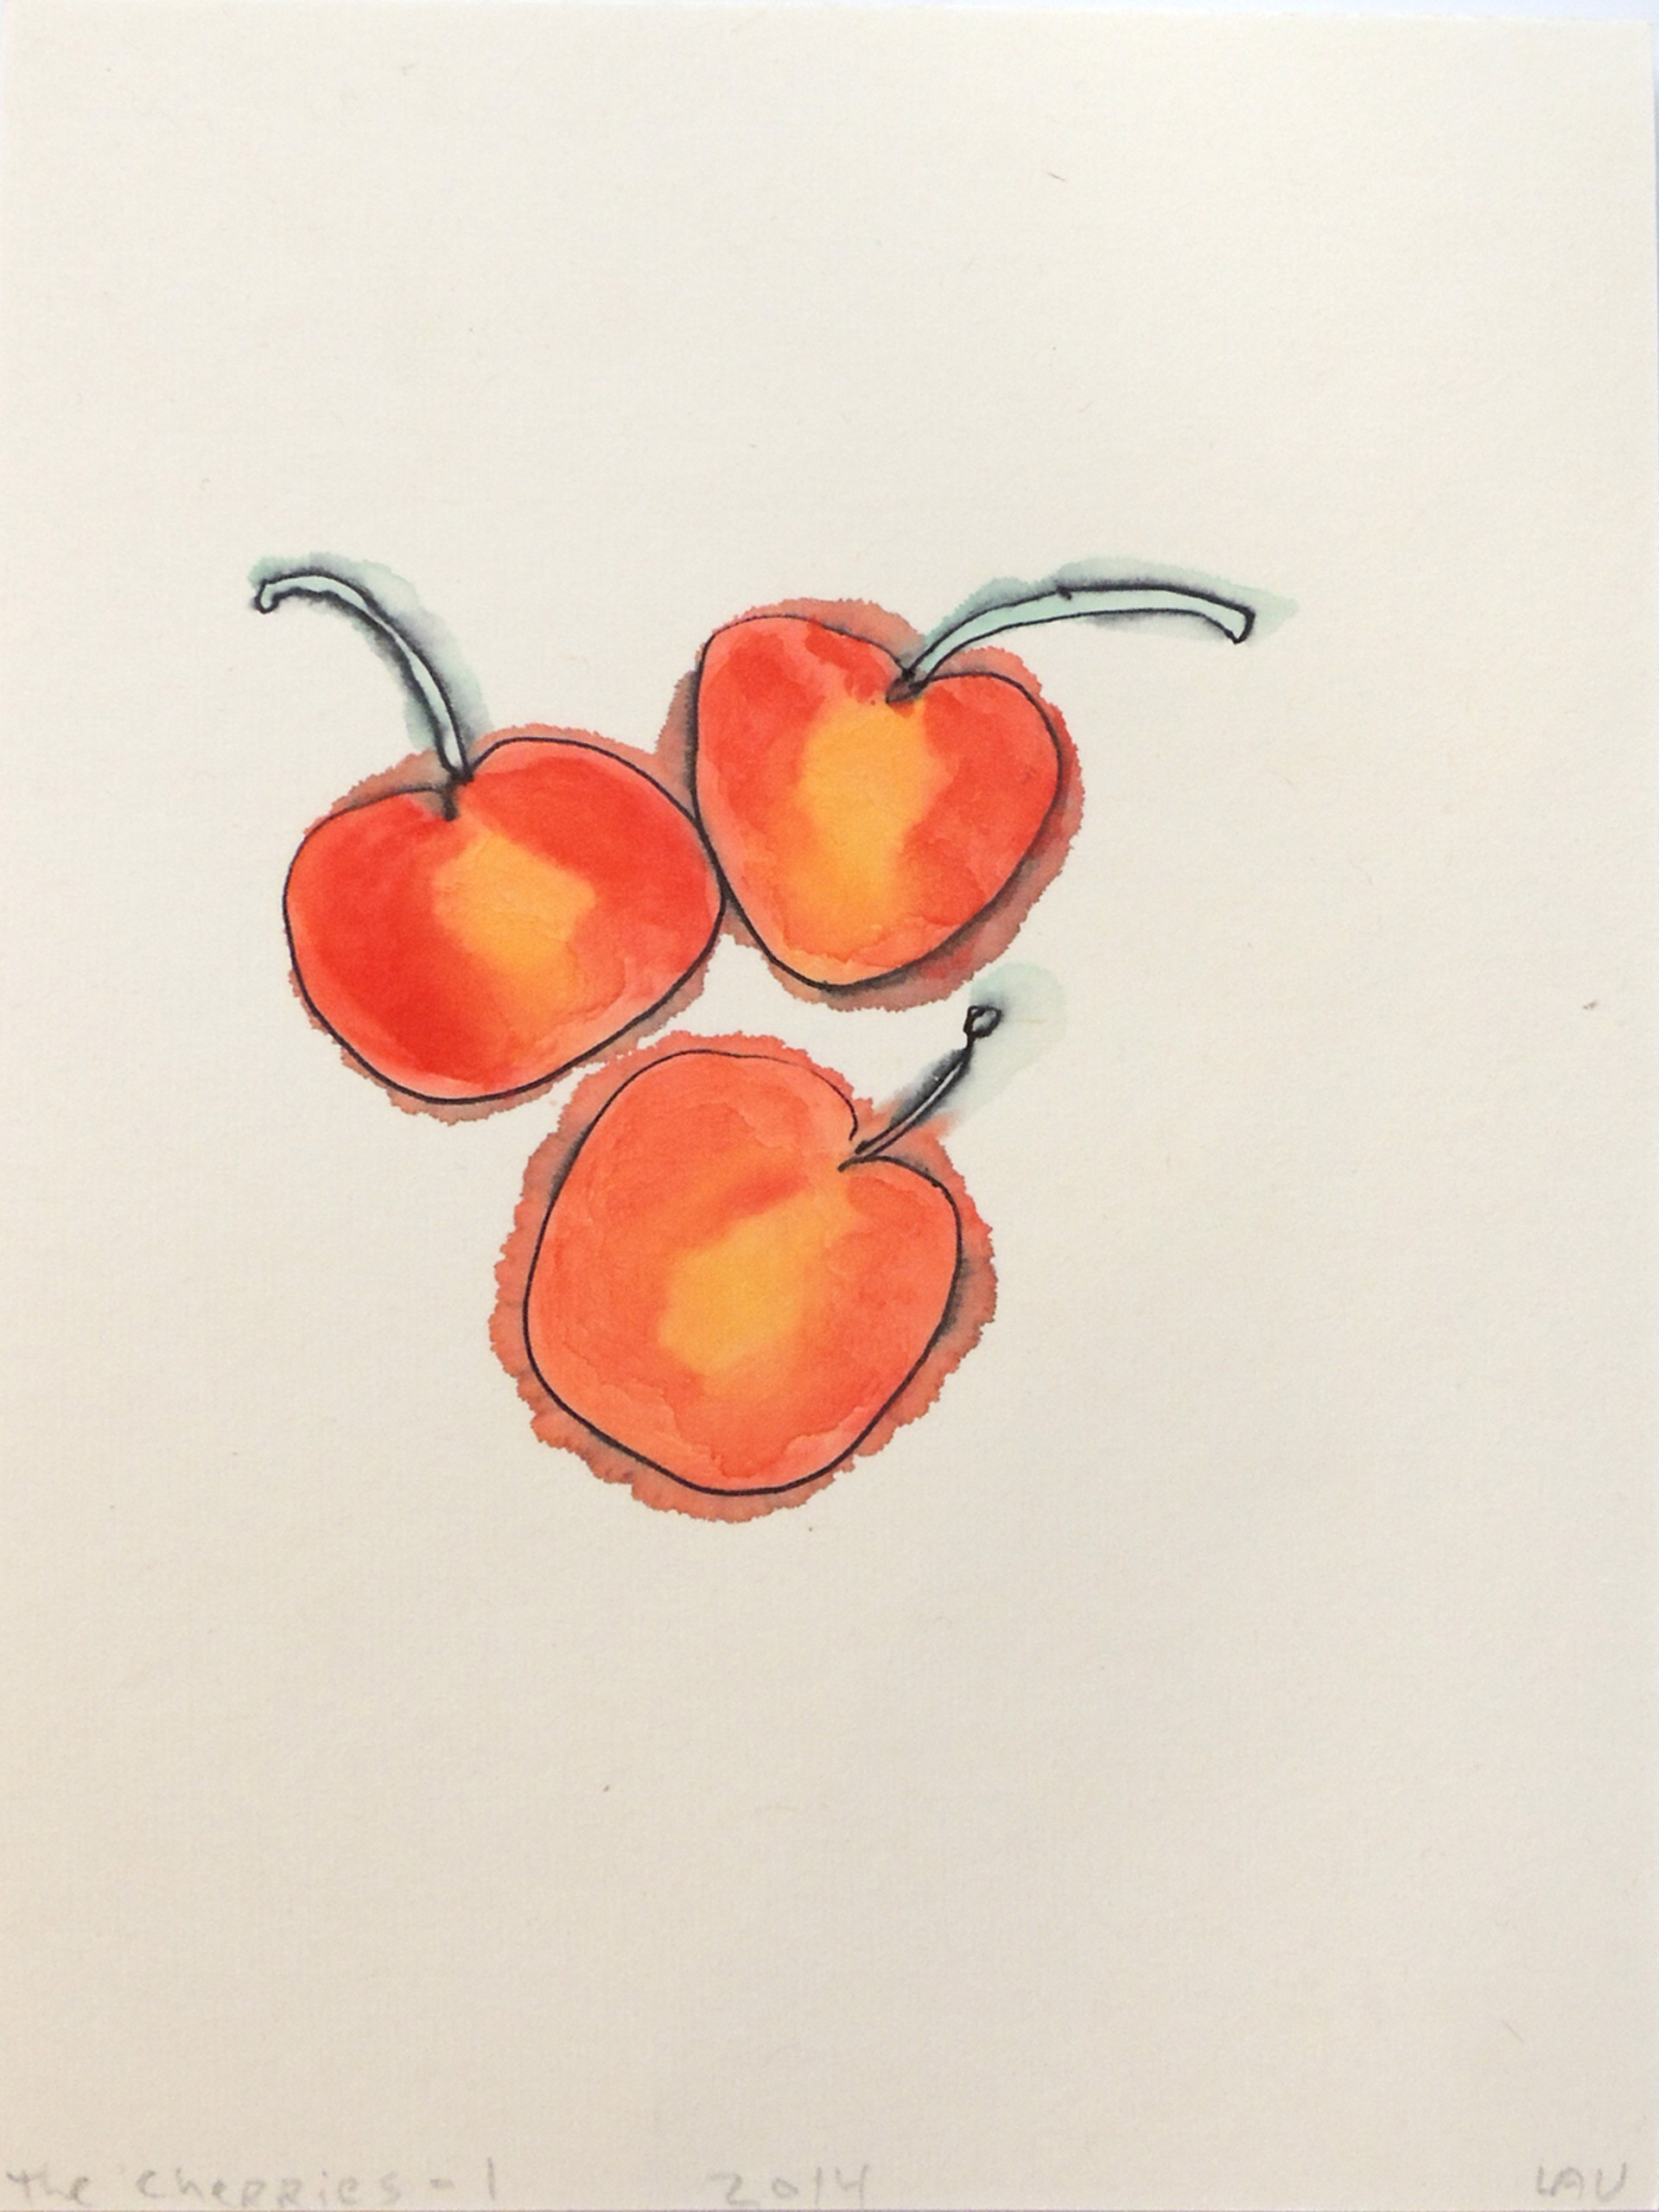 the cherries-1 by Alan Lau | Small Works